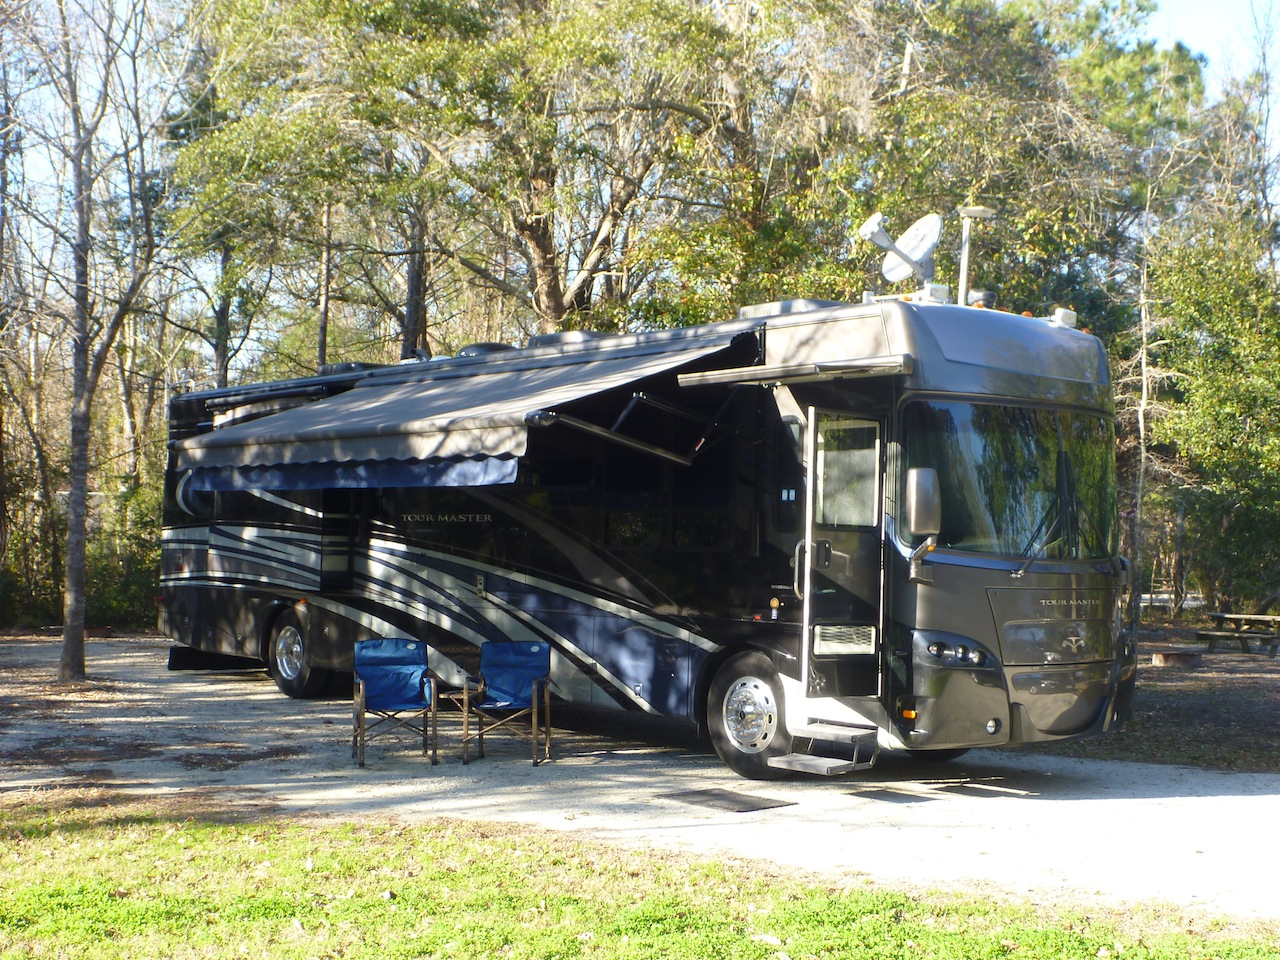 Our Site At The James Island County Park Campground